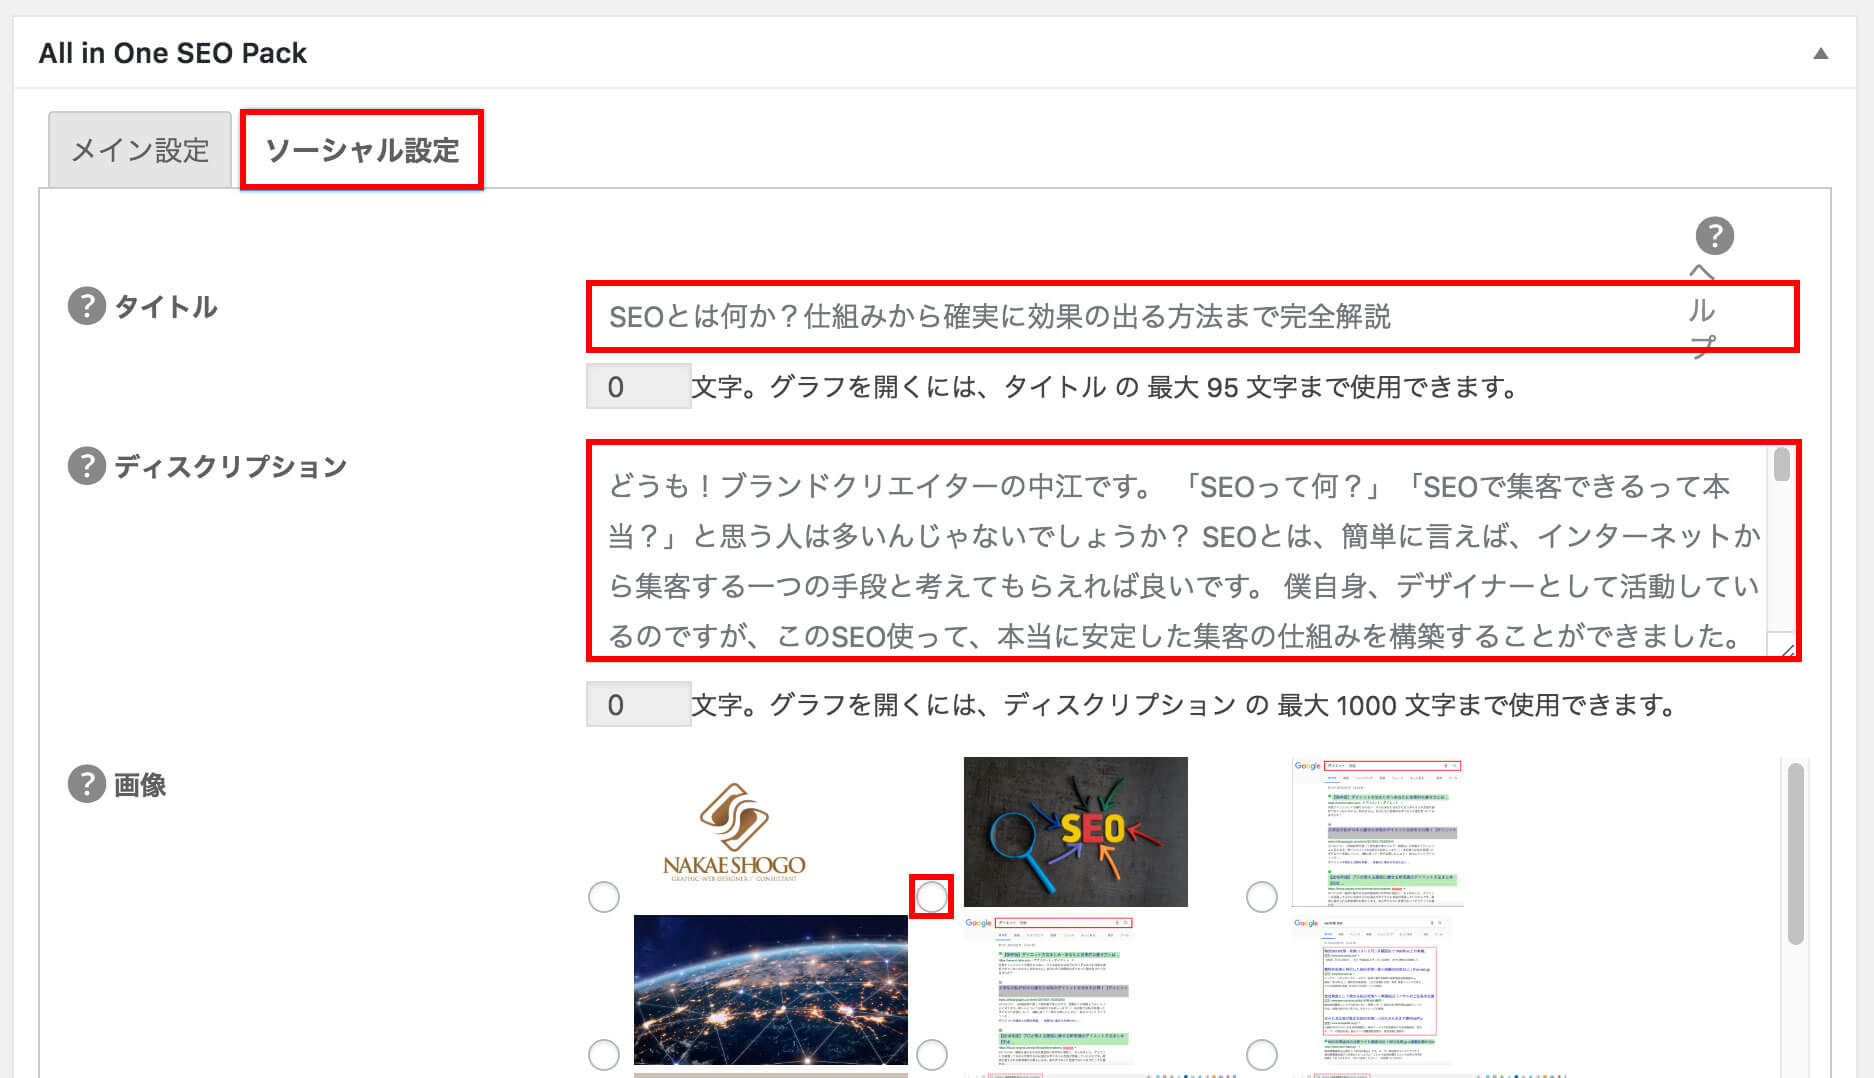 All in One SEO Packのソーシャル設定